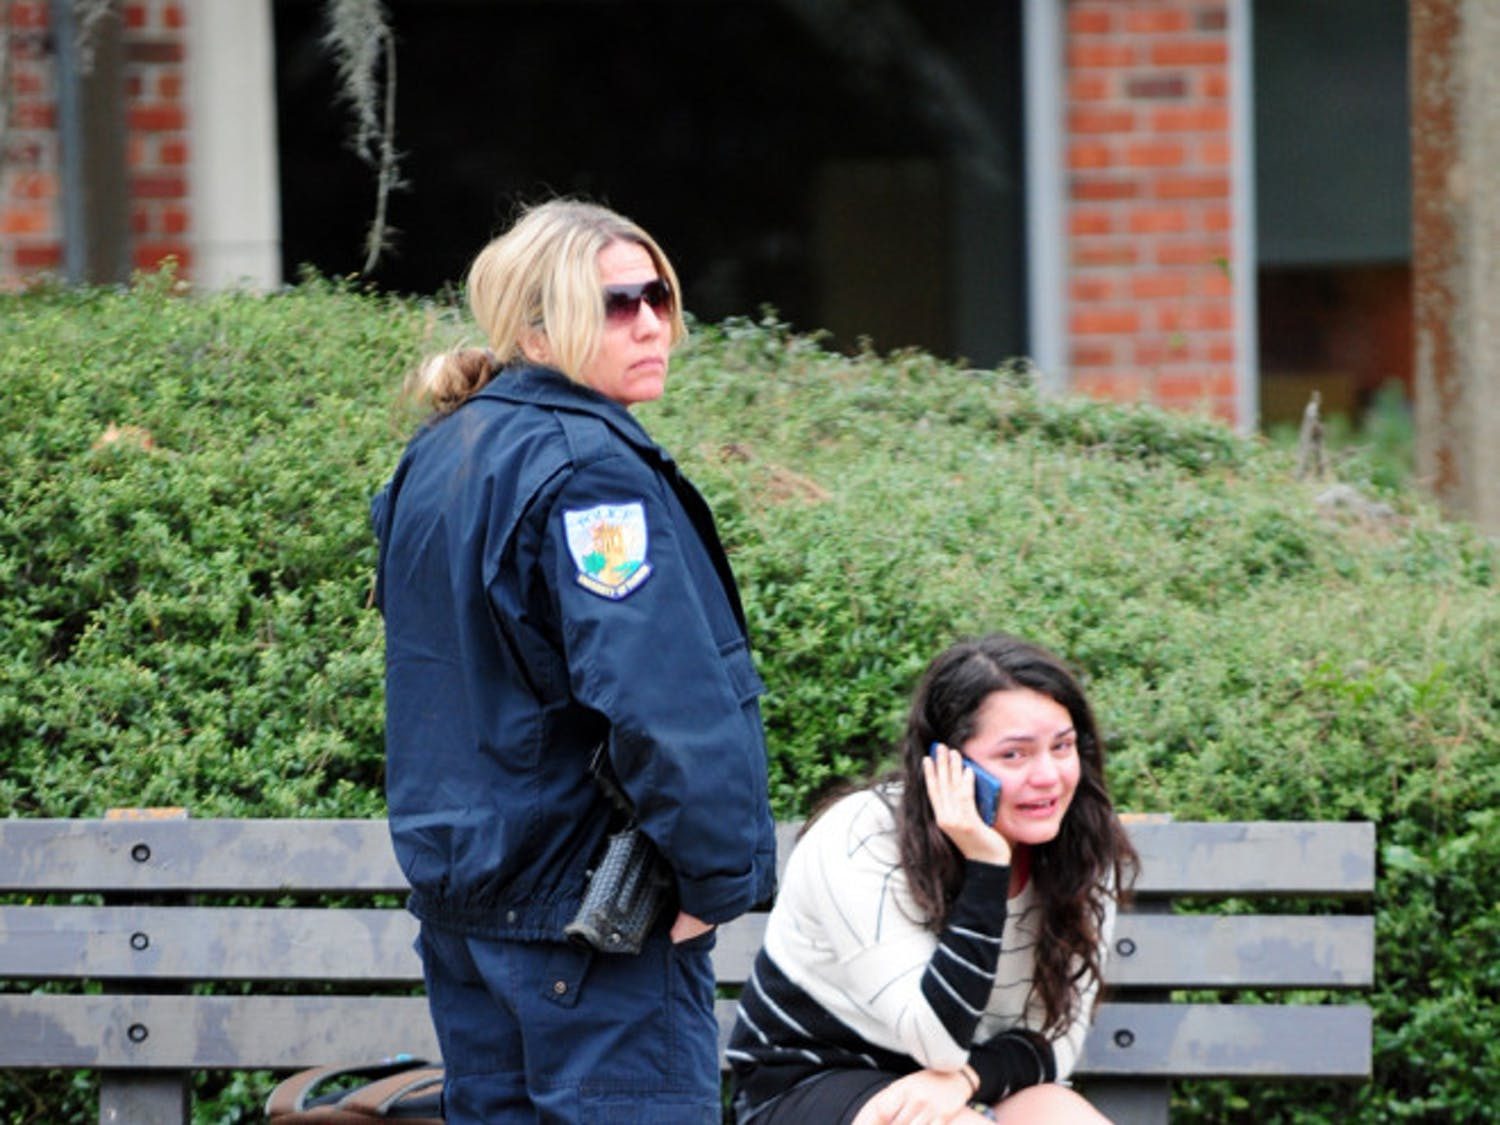 Melanie Cabezas, a 21-year-old chemical engineering senior, talks on the phone Thursday evening after getting hit by a Route 38 RTS bus near the Hub.